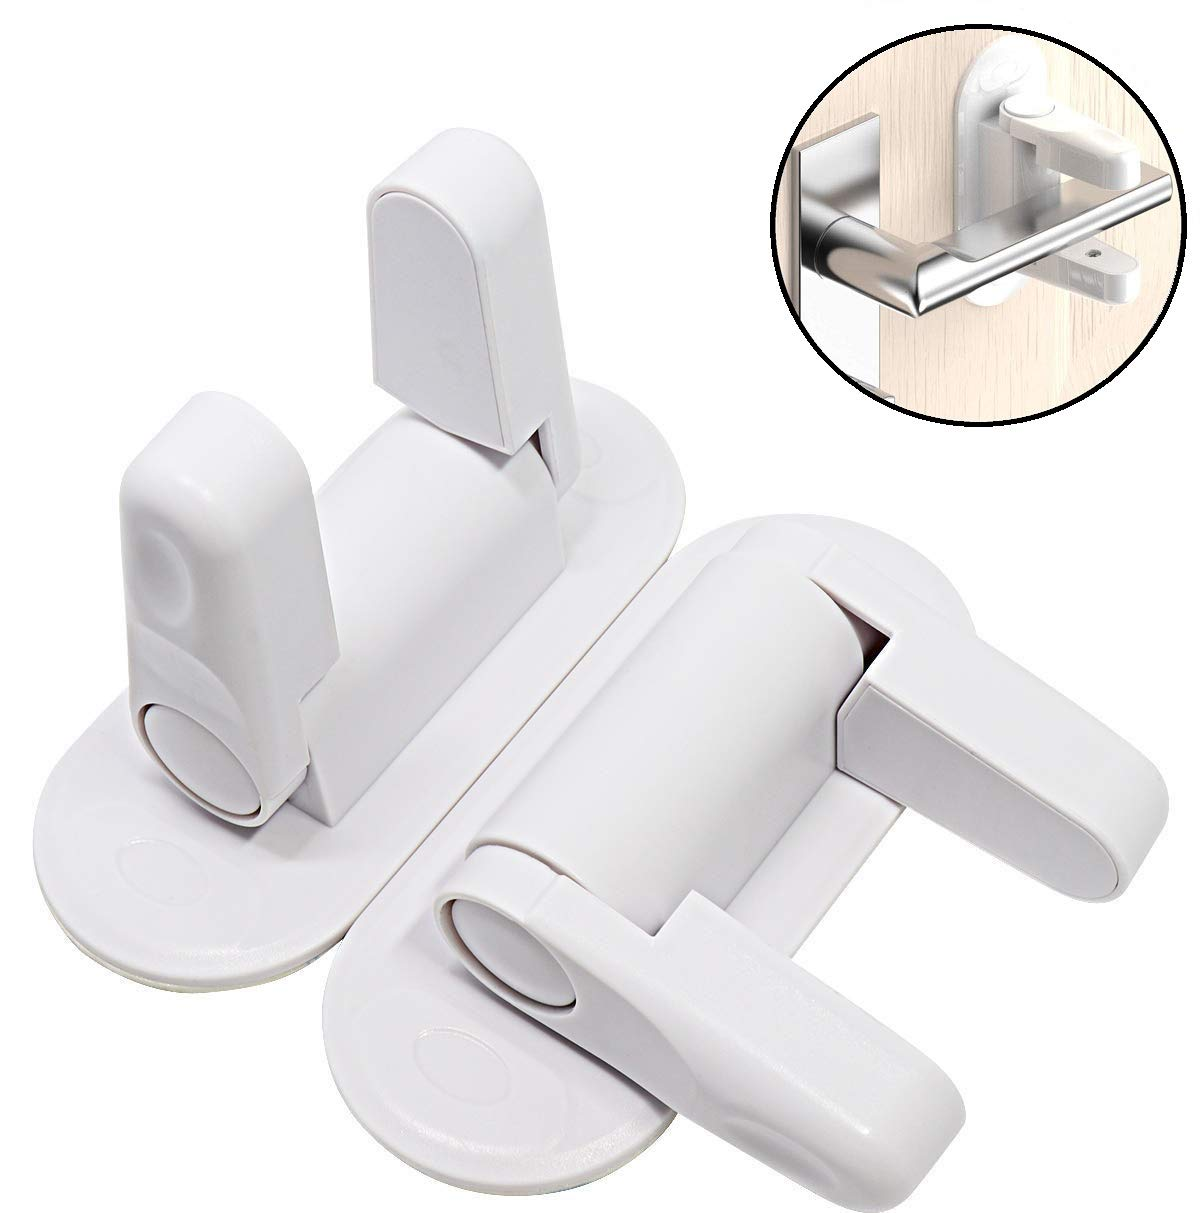 Door Lever Lock for Kids,2 Pack Baby Proof Safety Door Handle Lock 0-5 Years Old (White)